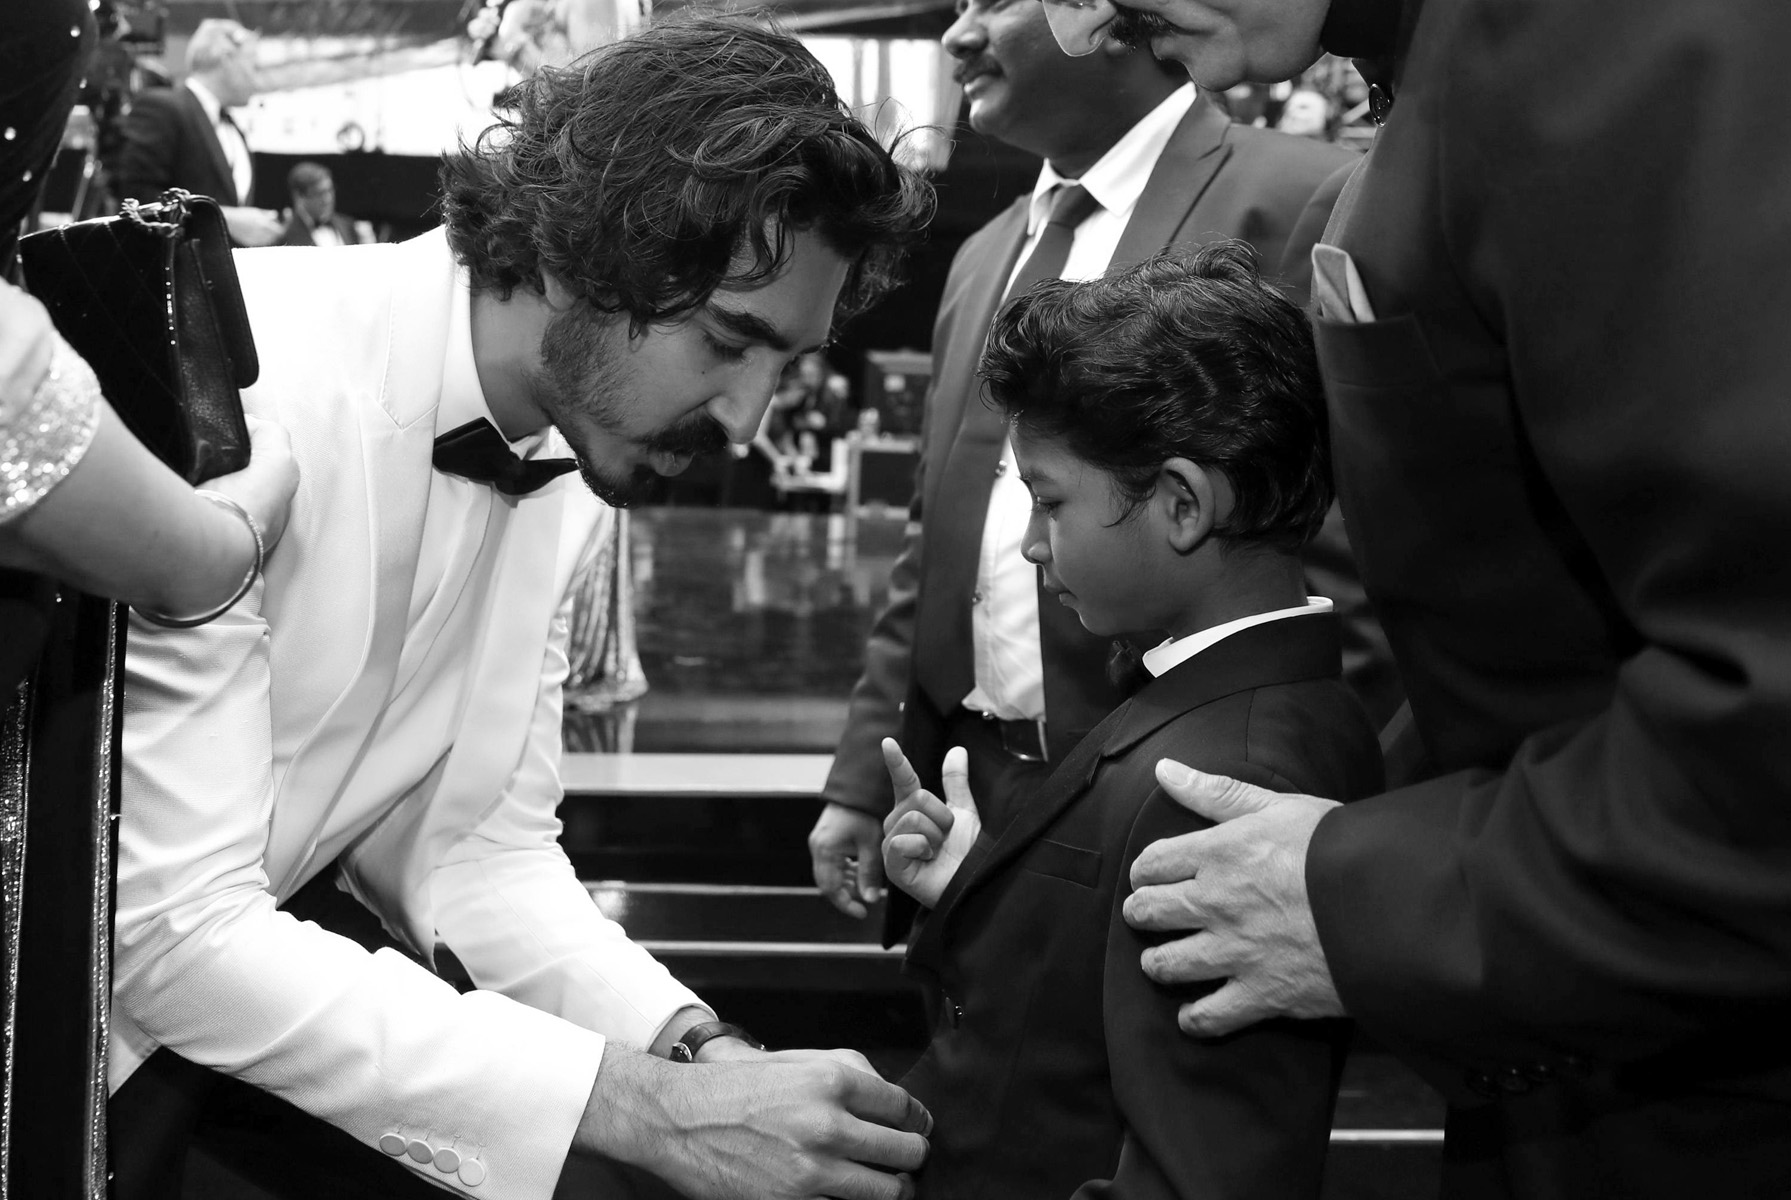 Dev Patel, left, and Sunny Pawar arrive at the Oscars on Sunday, Feb. 26, 2017, at the Dolby Theatre in Los Angeles. (Photo by Matt Sayles/Invision/AP)